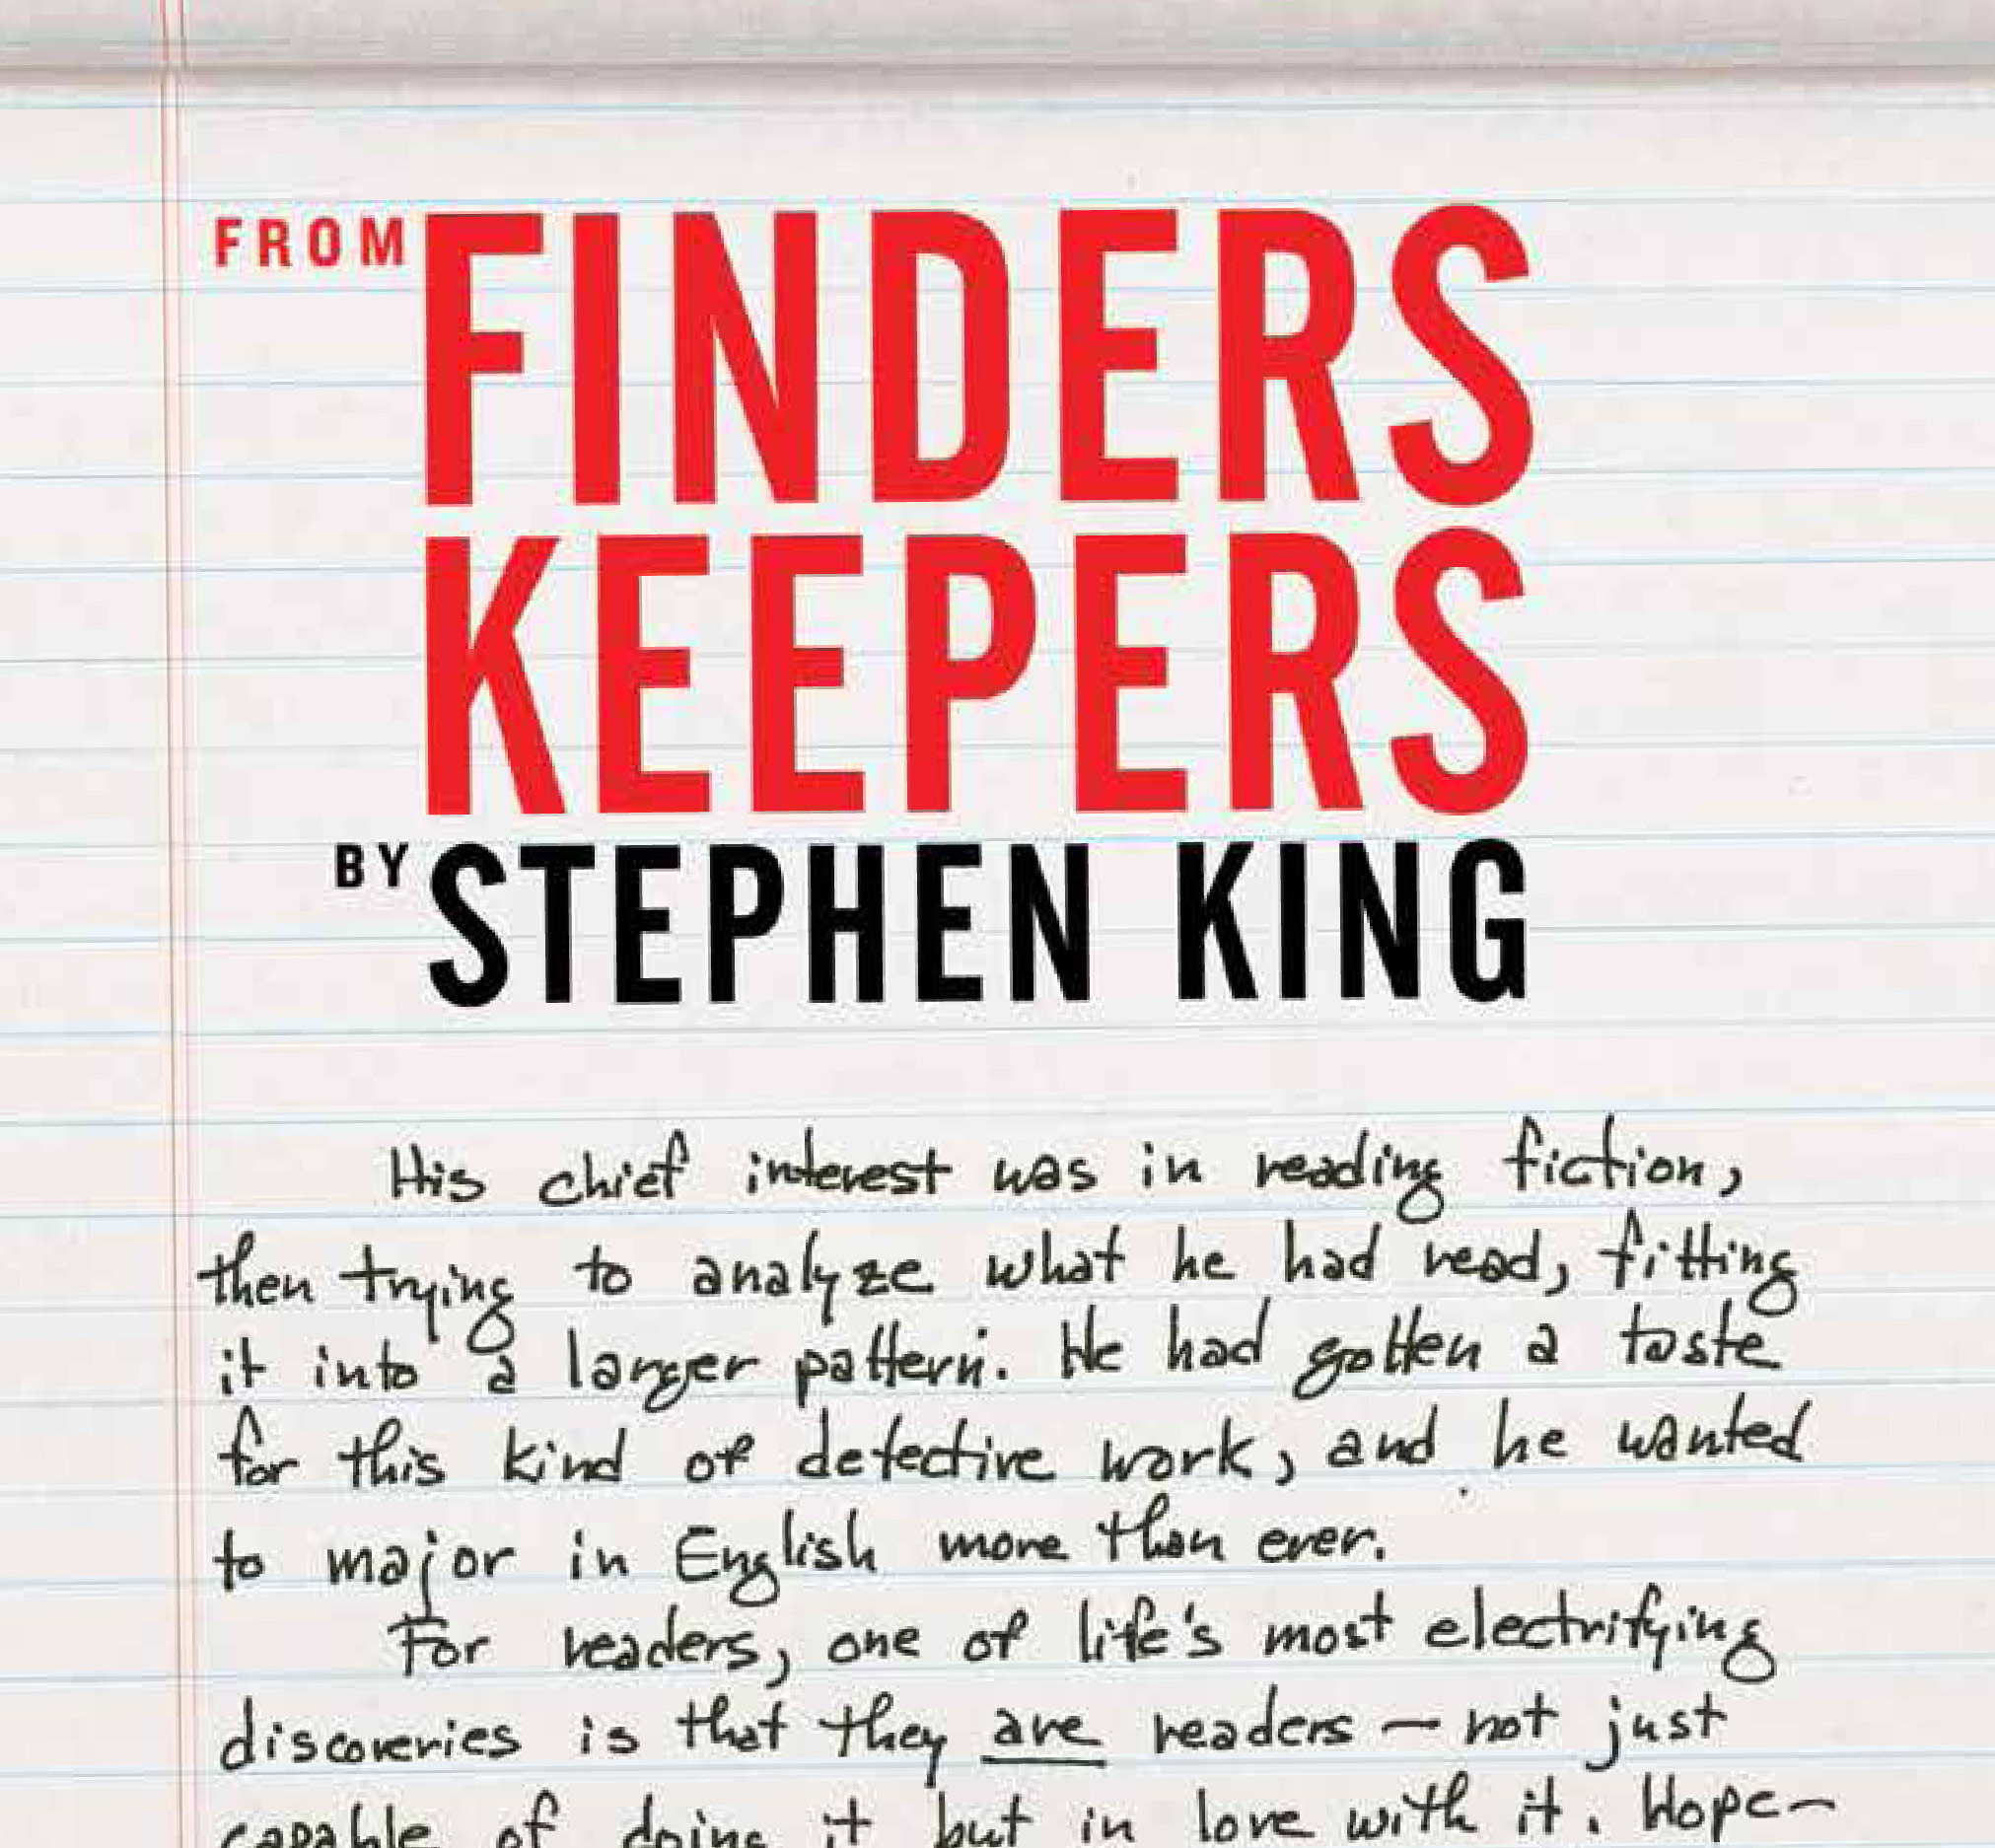 finders keepers broadside This color broadside from Stephen King s forthcoming novel, Finders Keepers, is a